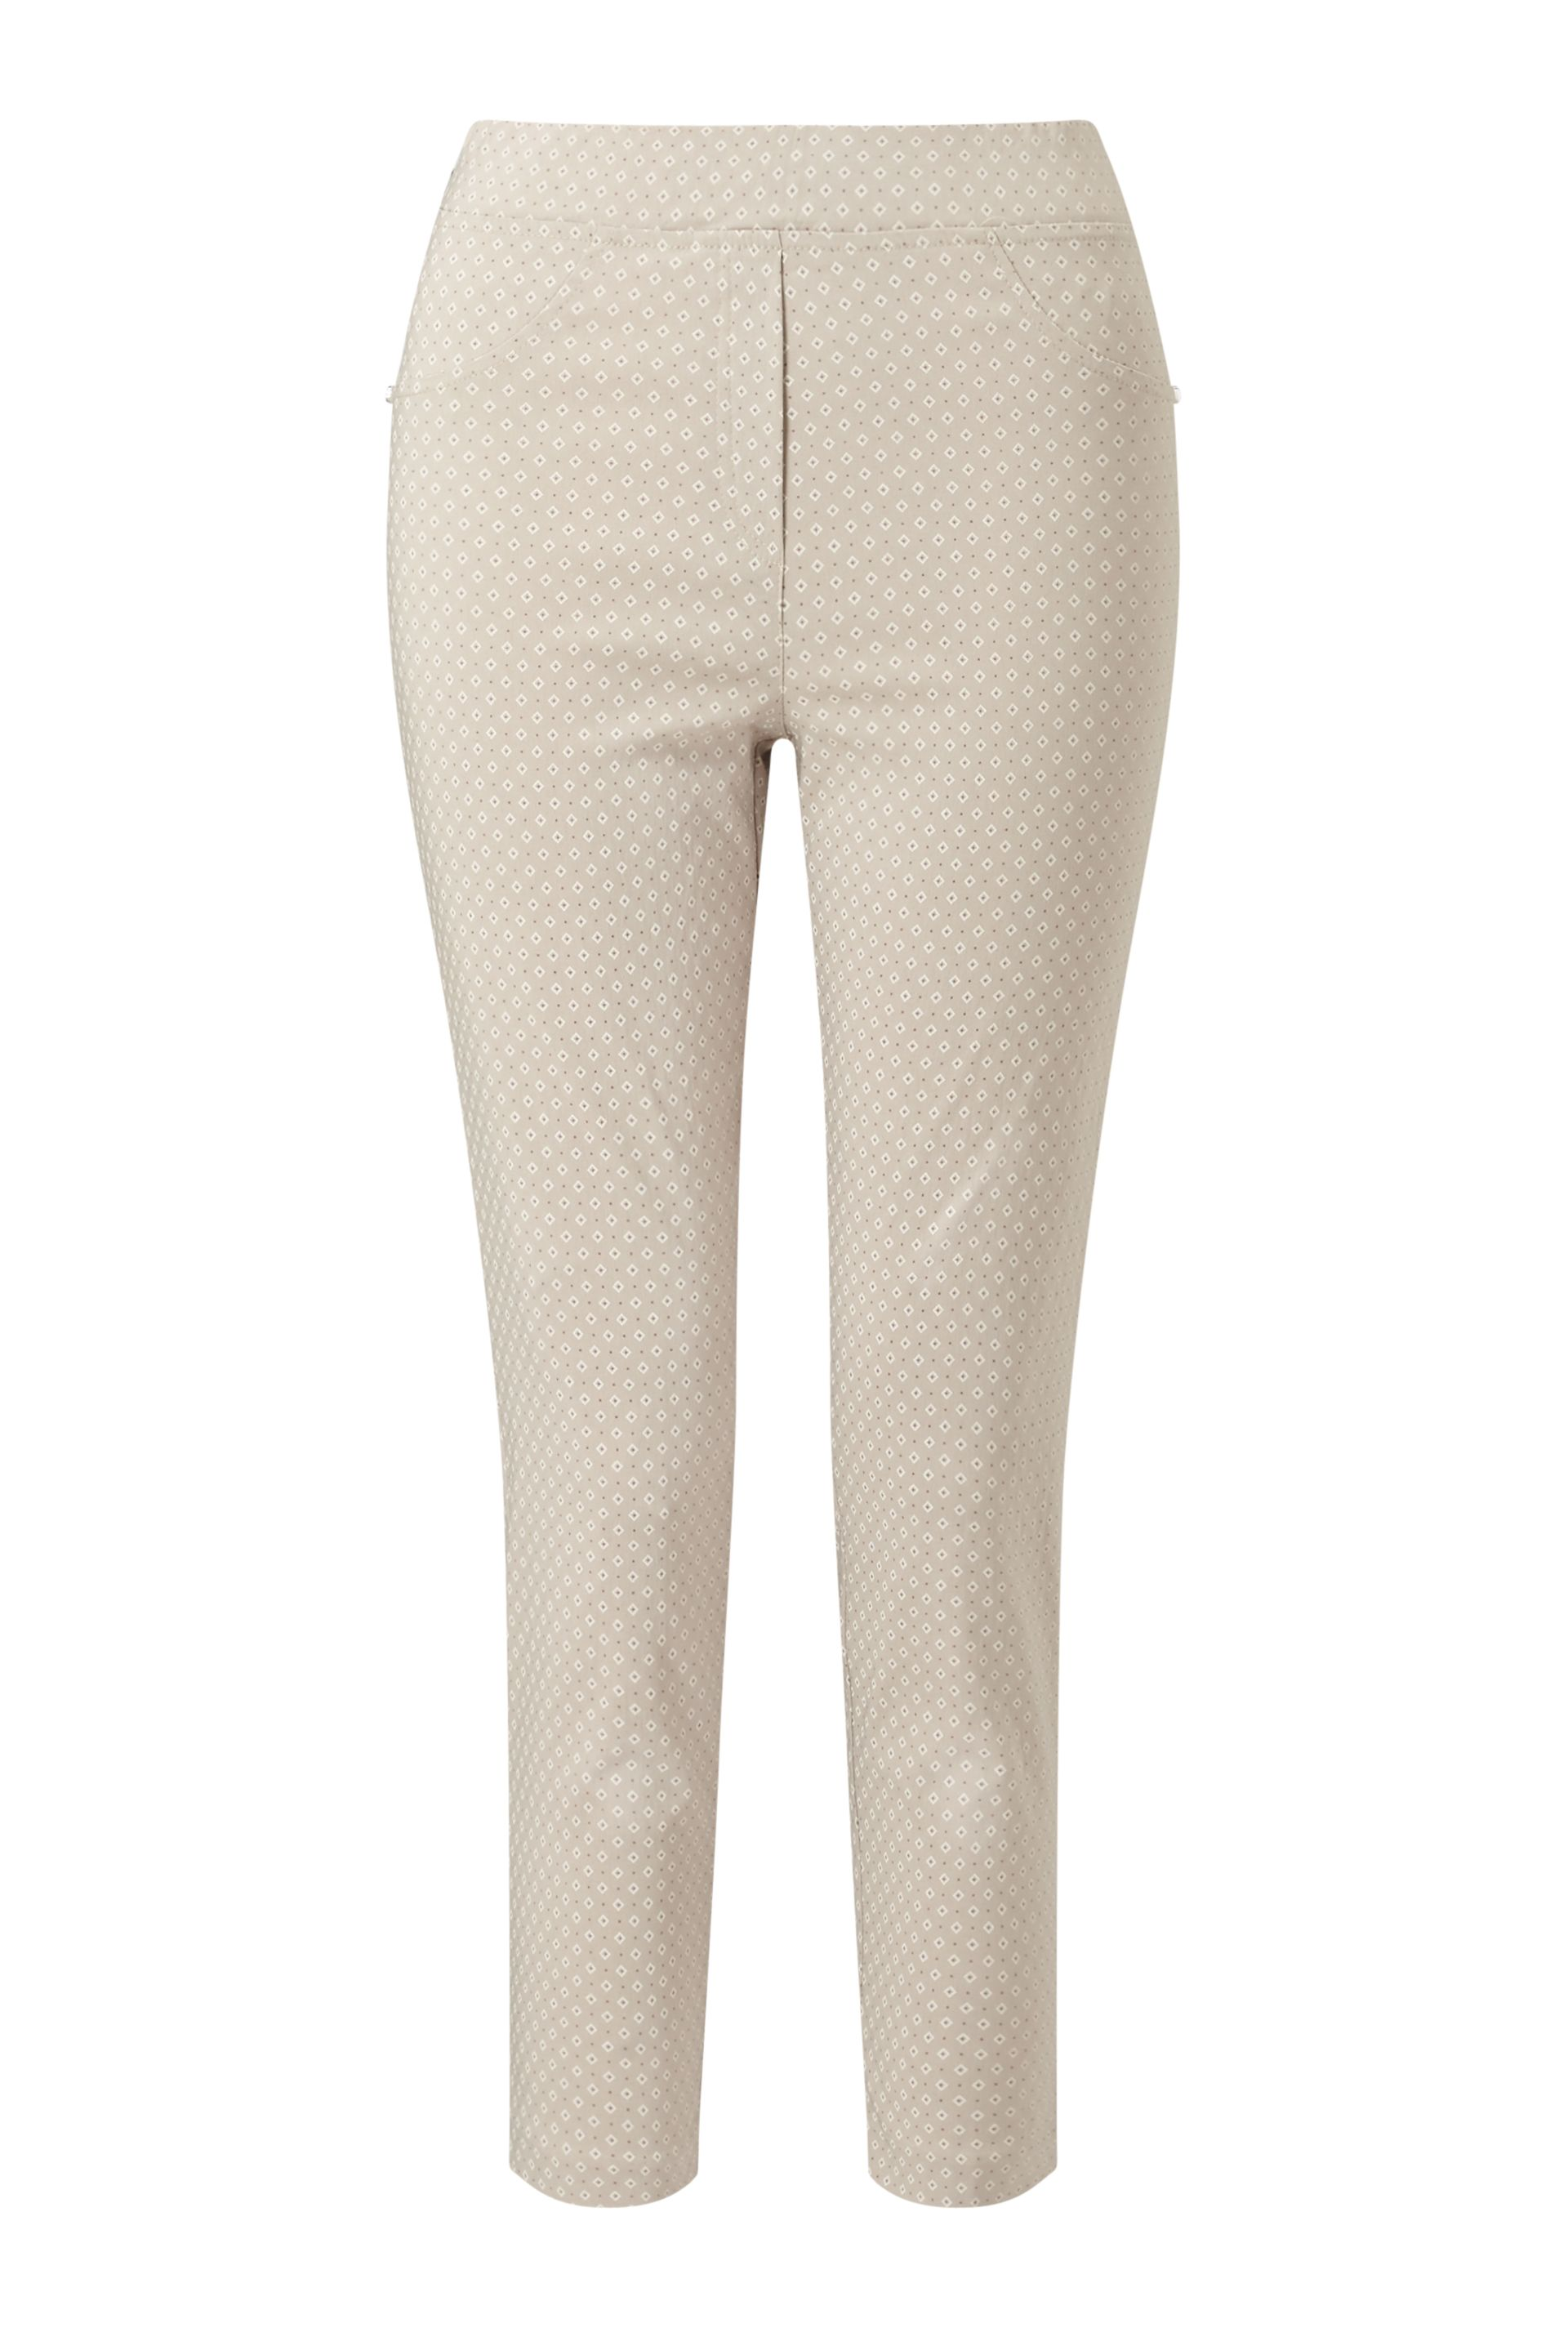 James Lakeland Long Patterened Trousers, White